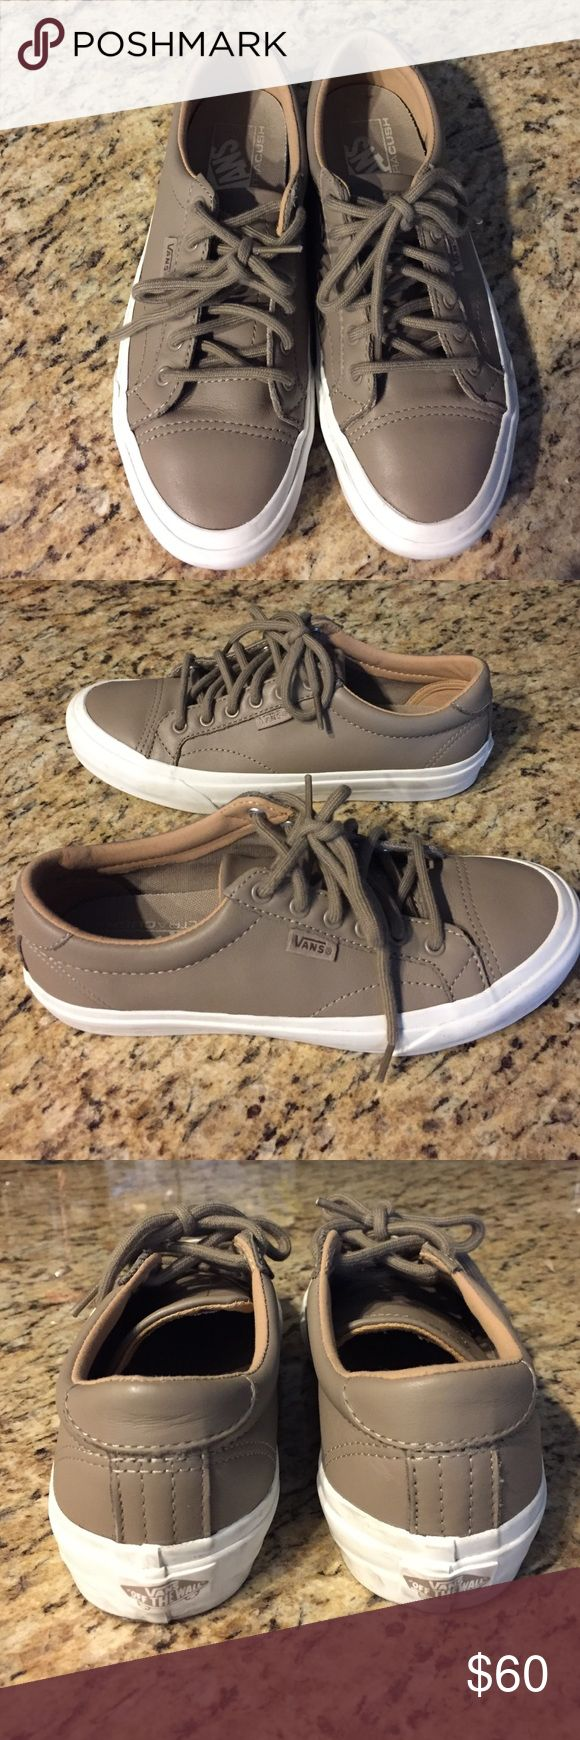 Vans Leather Court DX - Women's Sneakers The sneaker trend is here to stay. Work once Leather Vans in Super Taupe, such a neutral color that goes with everything. Excellent condition. Super comfortable, gave me no blisters like some fashion sneakers do. I threw away the box but have the receipt attached. They were purchased on 11/9/16.  Feel free to make an offer. They retail for $81 w/ tax. Vans Shoes Sneakers